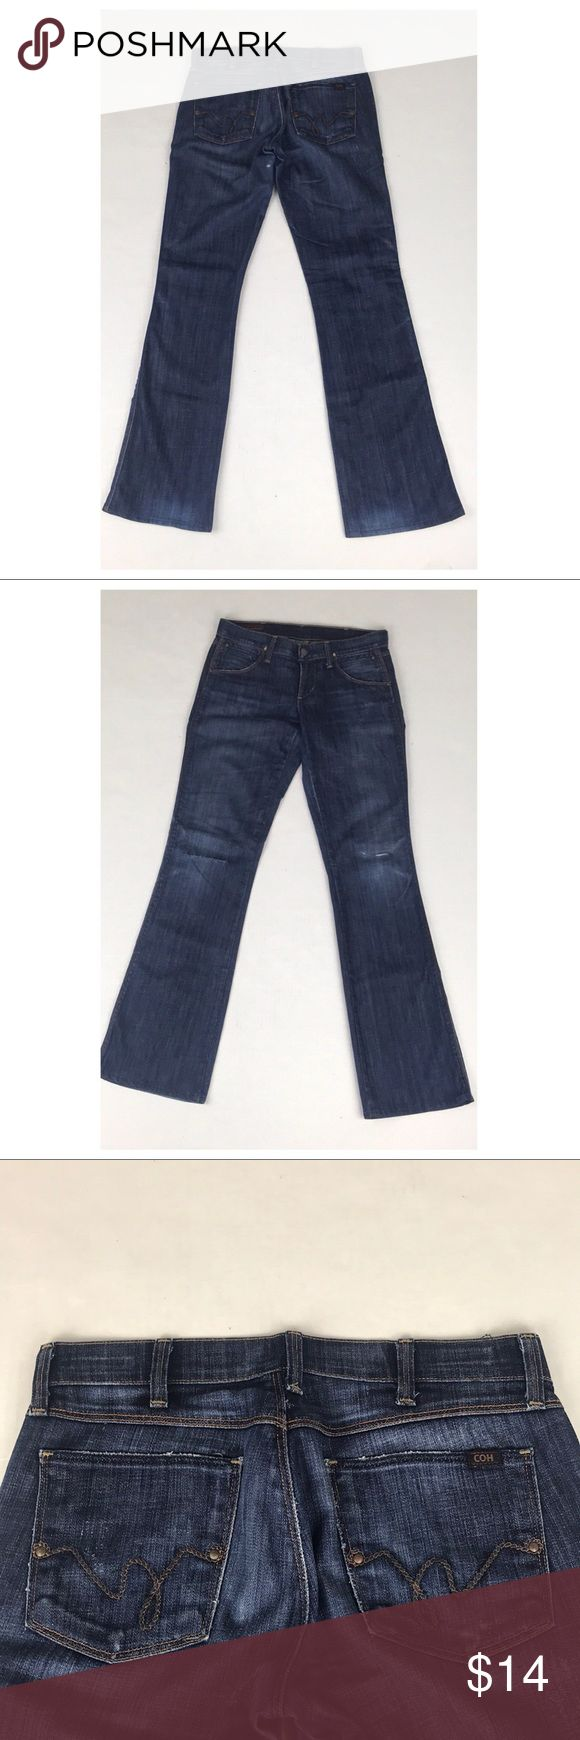 """Hudson Kelly Stretch Low Waist Bootcut Jeans 27x32 Pre owned in fair condition (as the pics show). No stains. There is a hole near the crotch that has been patched as well as one in the knee & one in the other knee that has not been patched. These have been hemmed. These cool jeans w/unique western rope pocket stitching can be worn distressed as is or would be great cutoff shorts. ▪️Measurements (while laid flat):  Total Length=39"""" Inseam= 32"""" Waist= 14.5"""" Thigh= 9.5"""" Rise= 7.5"""" Bottom Leg…"""